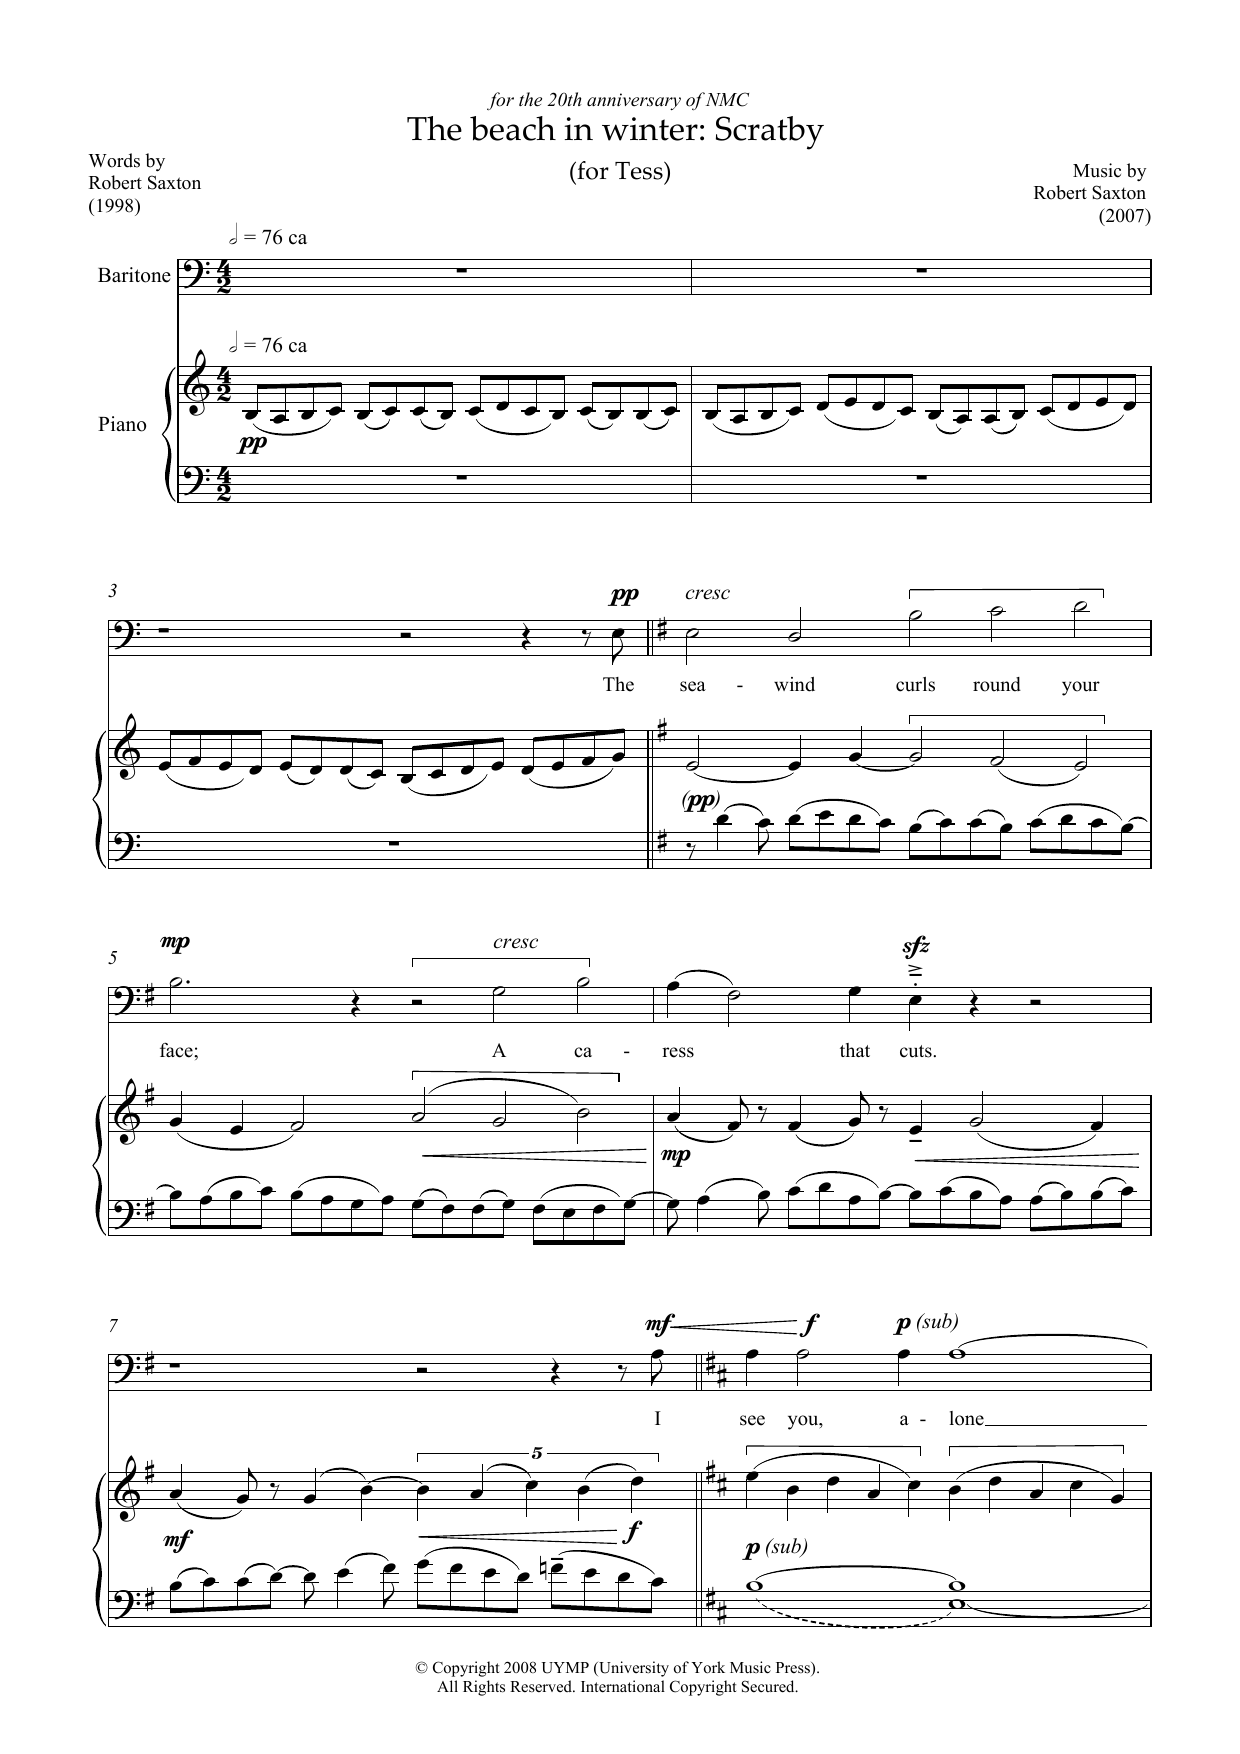 Robert Saxton - The beach in winter: Scratby (for baritone and piano)